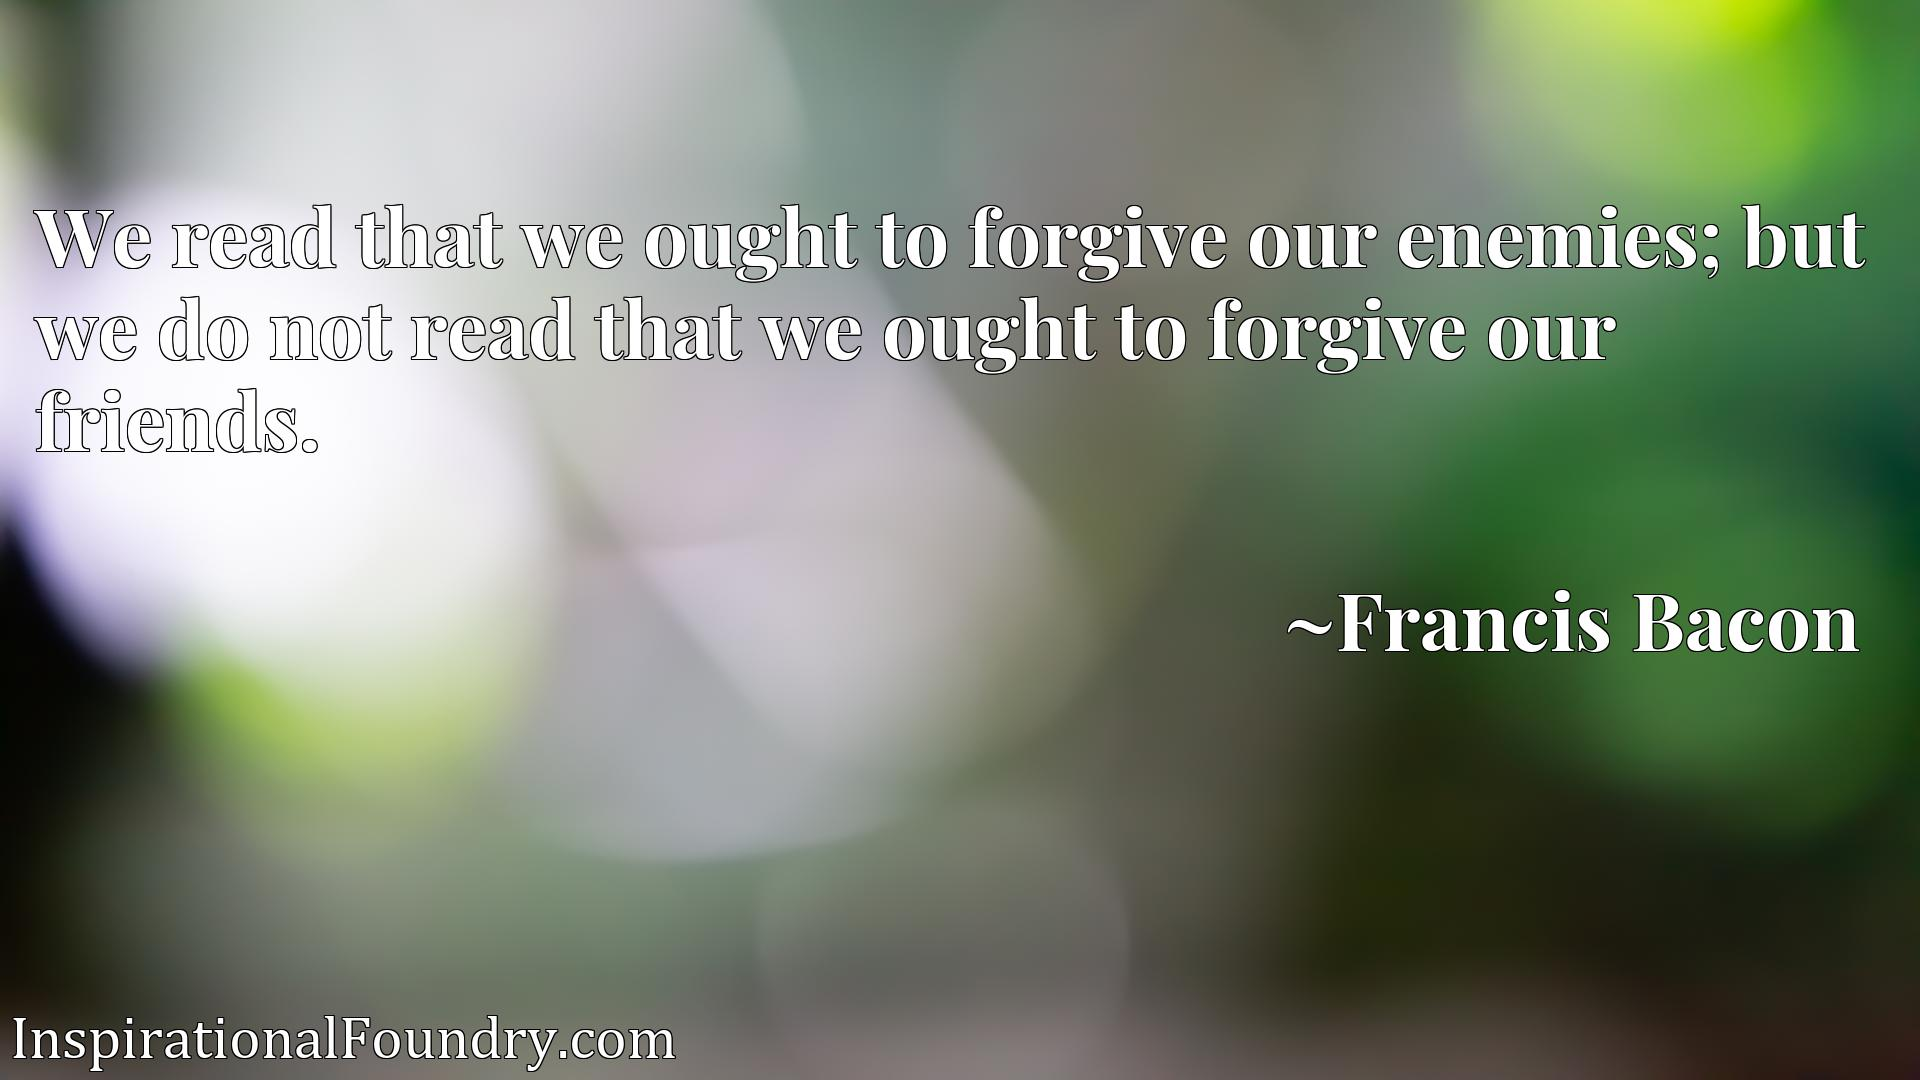 We read that we ought to forgive our enemies; but we do not read that we ought to forgive our friends.